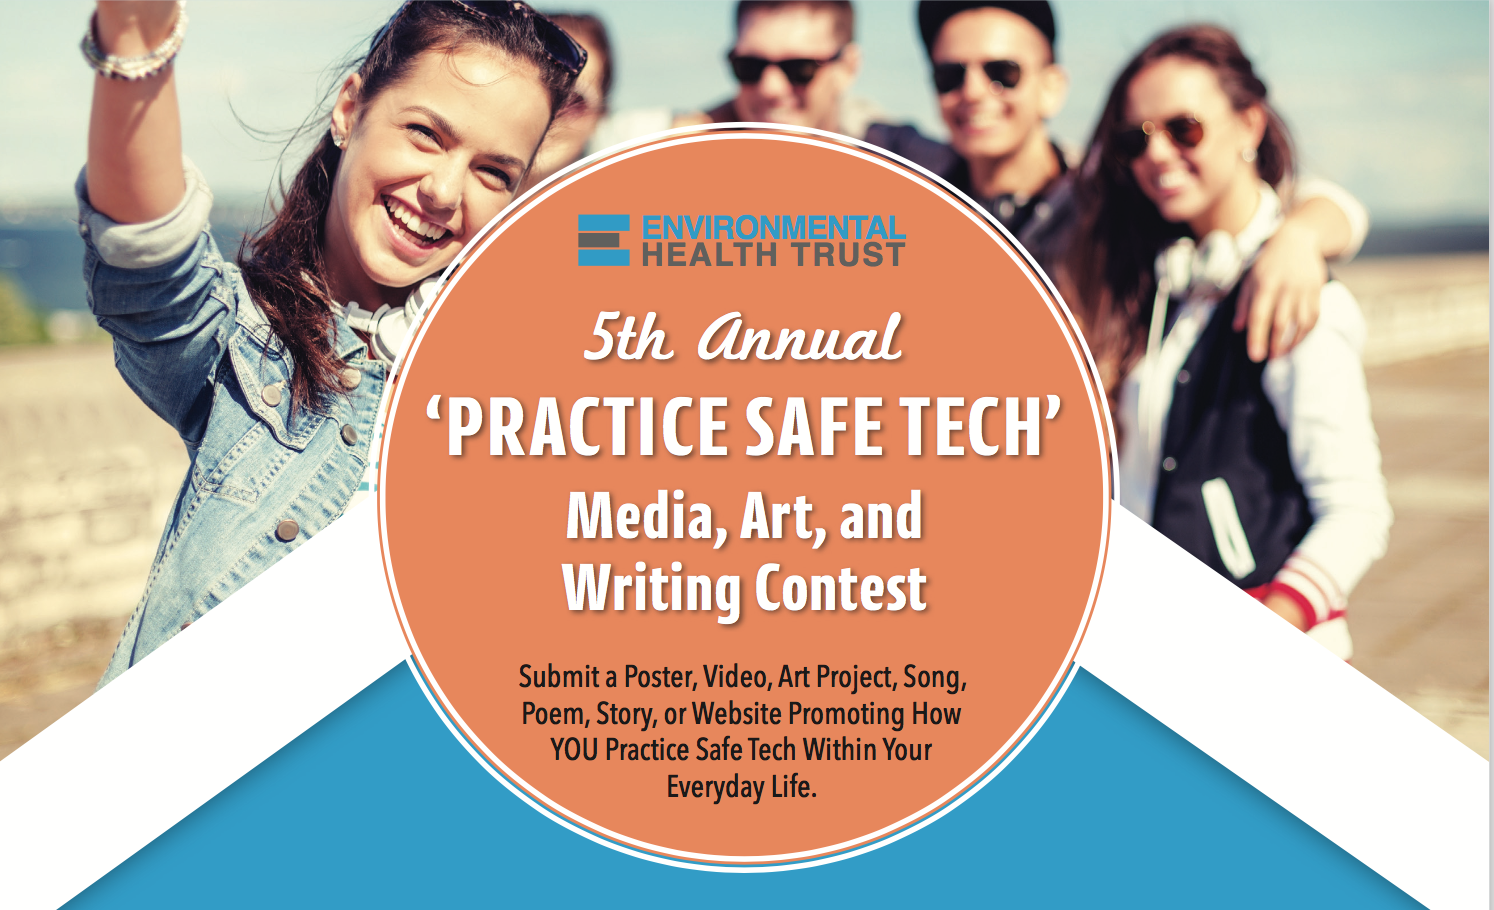 environmental health trust  blog archive teton county 5th annual teton county 5th annual practice safer tech media art writing contest